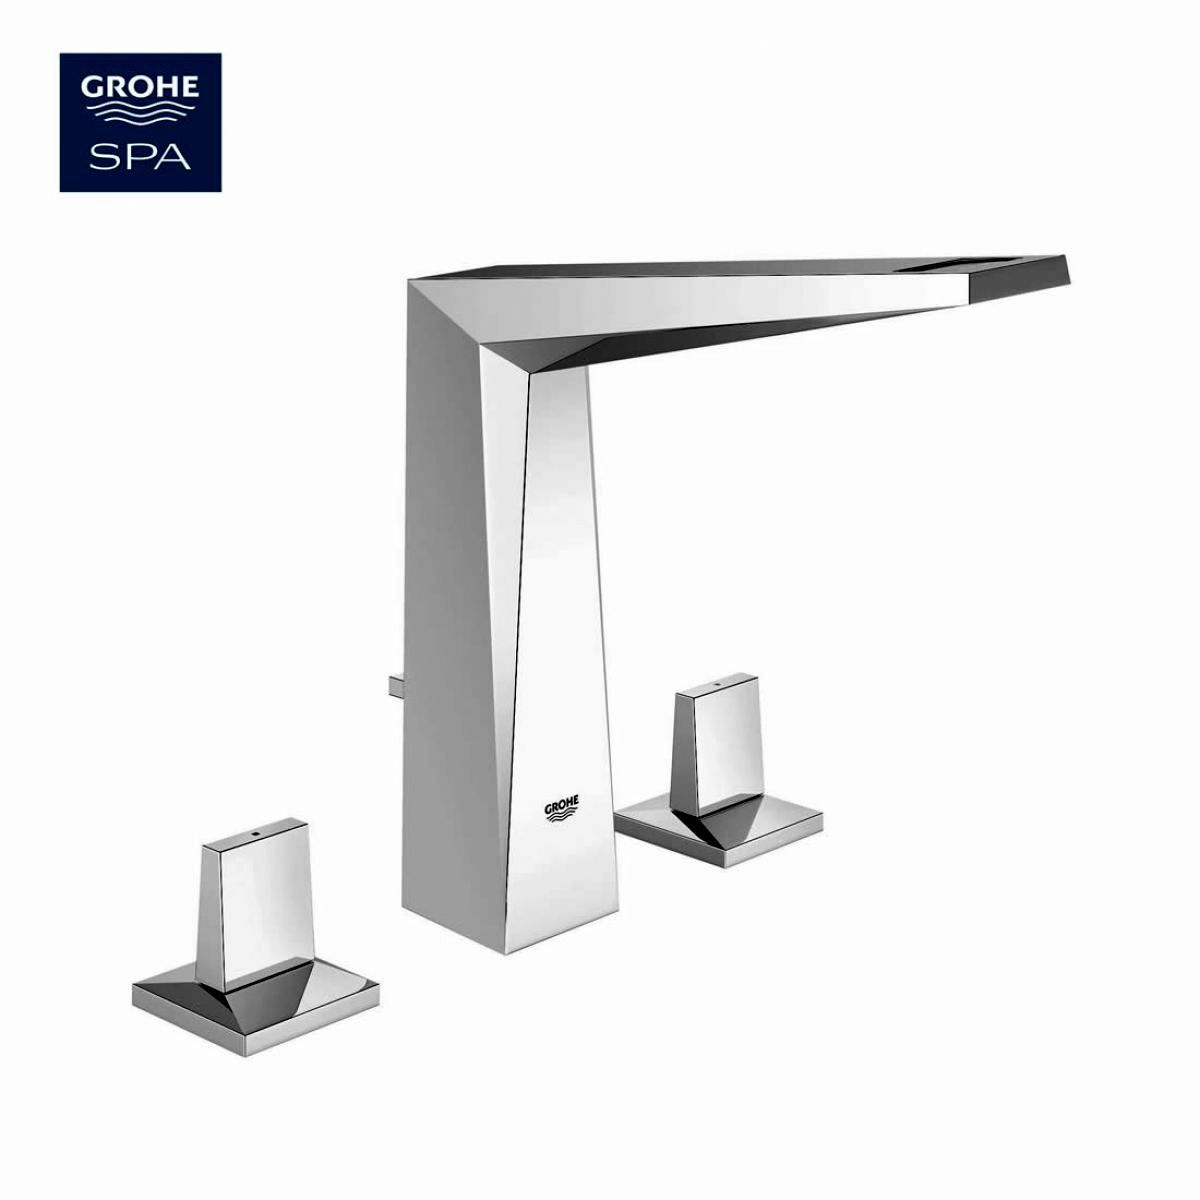 Grohe Allure Brilliant 3-hole Basin Mixer Tap : UK Bathrooms